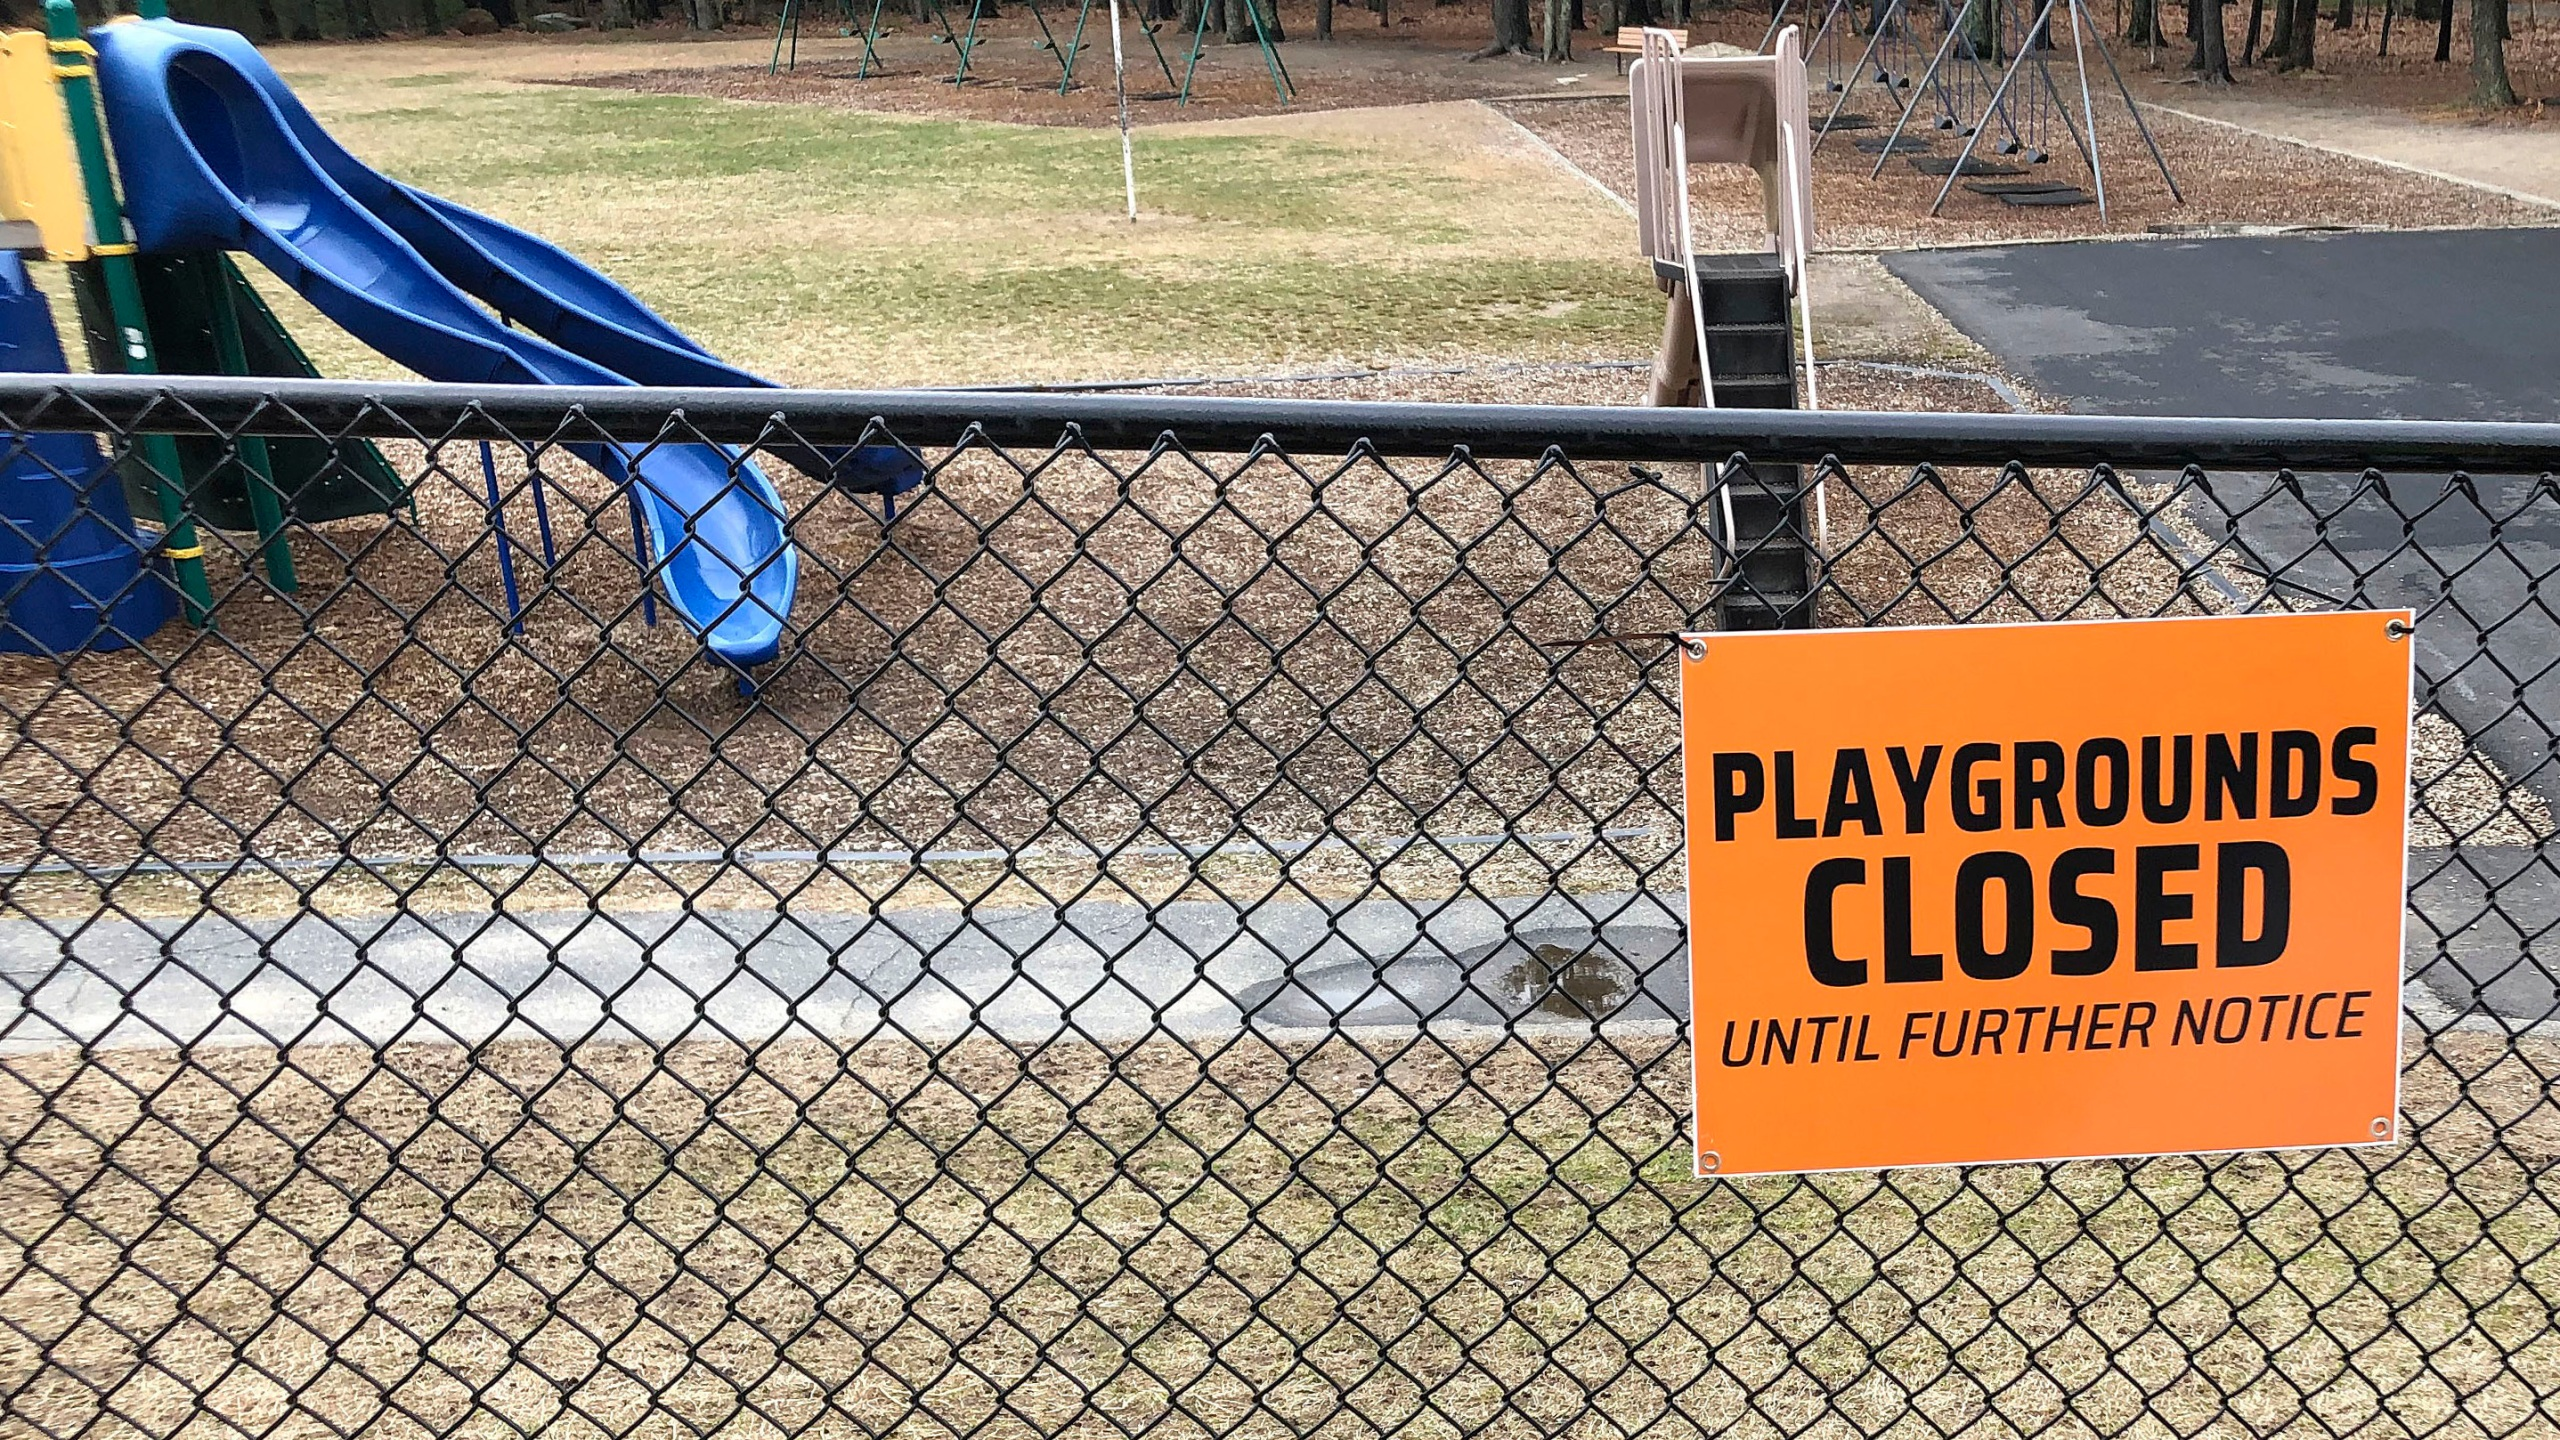 This Friday, March 20, 2020 file photo shows a closed sign near an entrance to a playground at an elementary school in Walpole, Mass., amid the COVID-19 coronavirus outbreak. Child welfare agencies in the U.S. have a difficult mission in the best of times, and now they're scrambling to confront new challenges during the coronavirus outbreak. (AP Photo/Steven Senne)